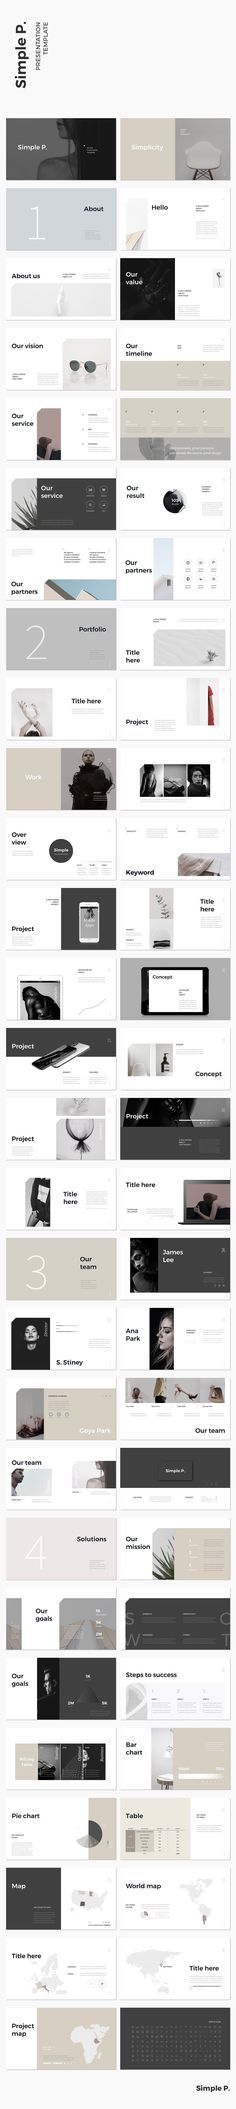 Simple P. Keynote Template by Simple P. on @creativemarket